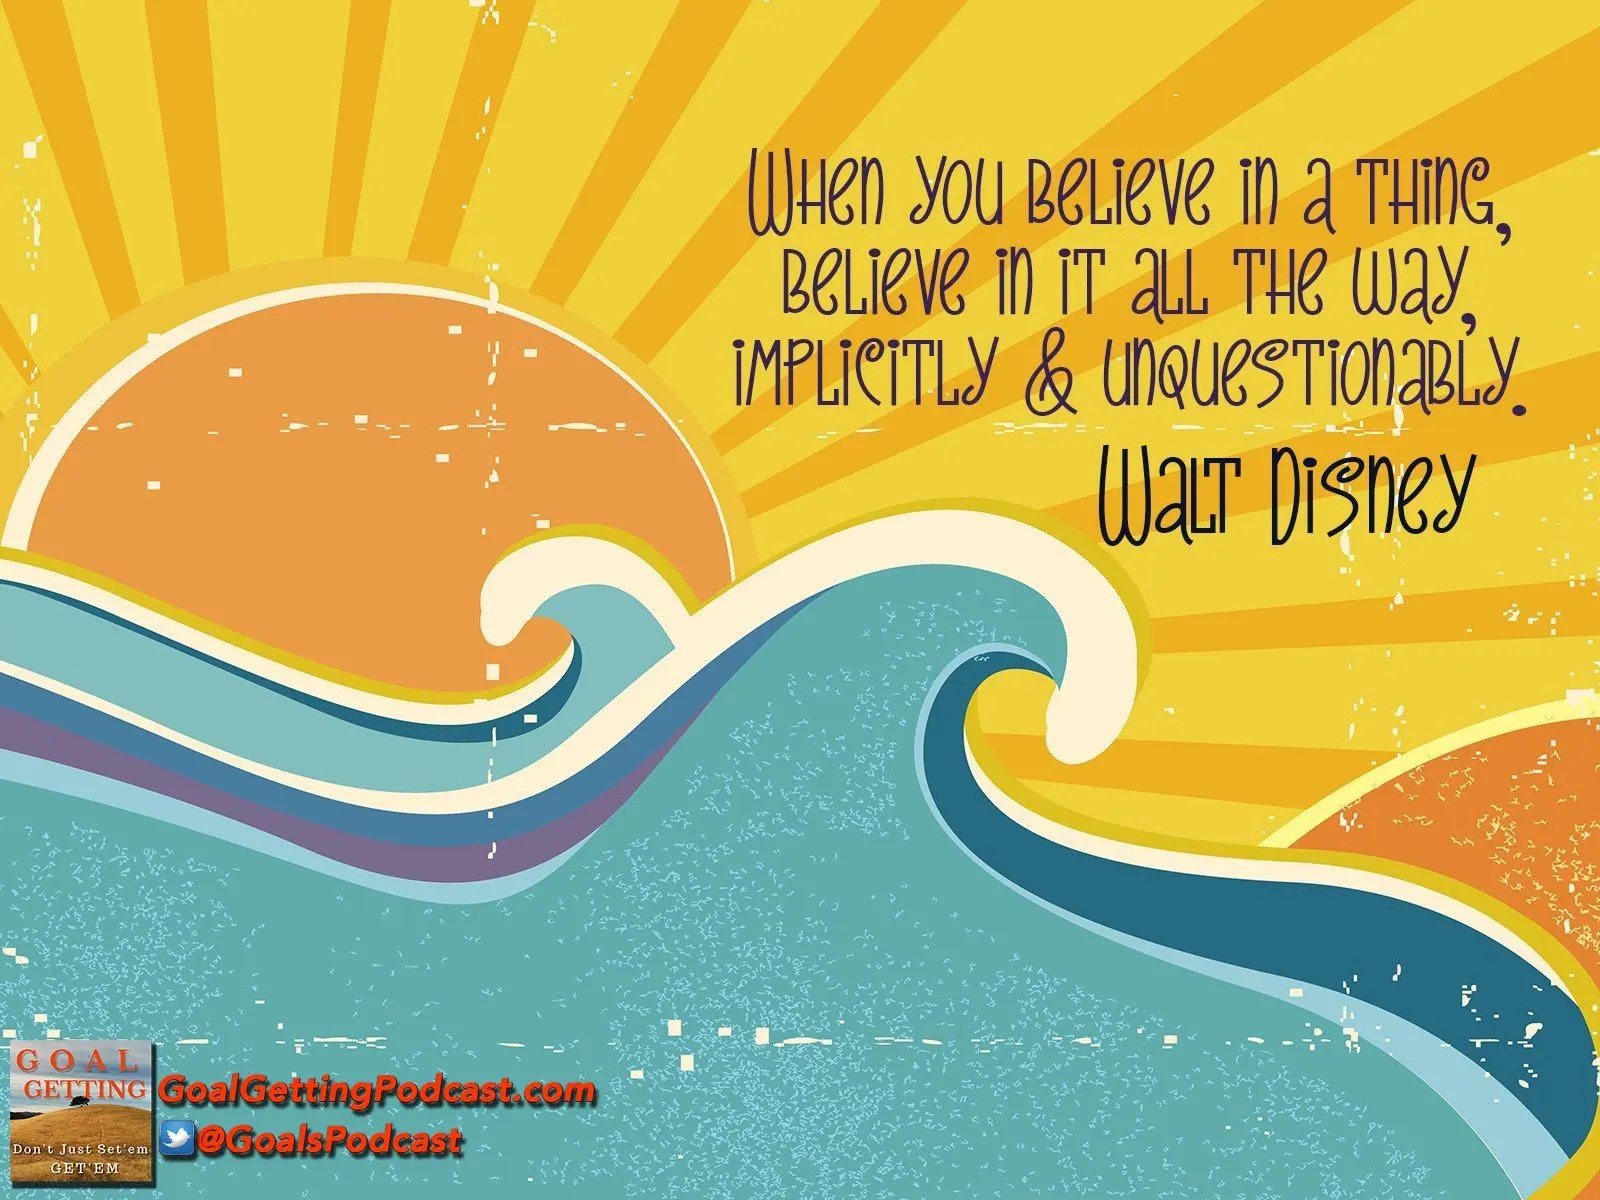 When you believe in a thing, believe in it implicitly and unquestionably. Walt Disney